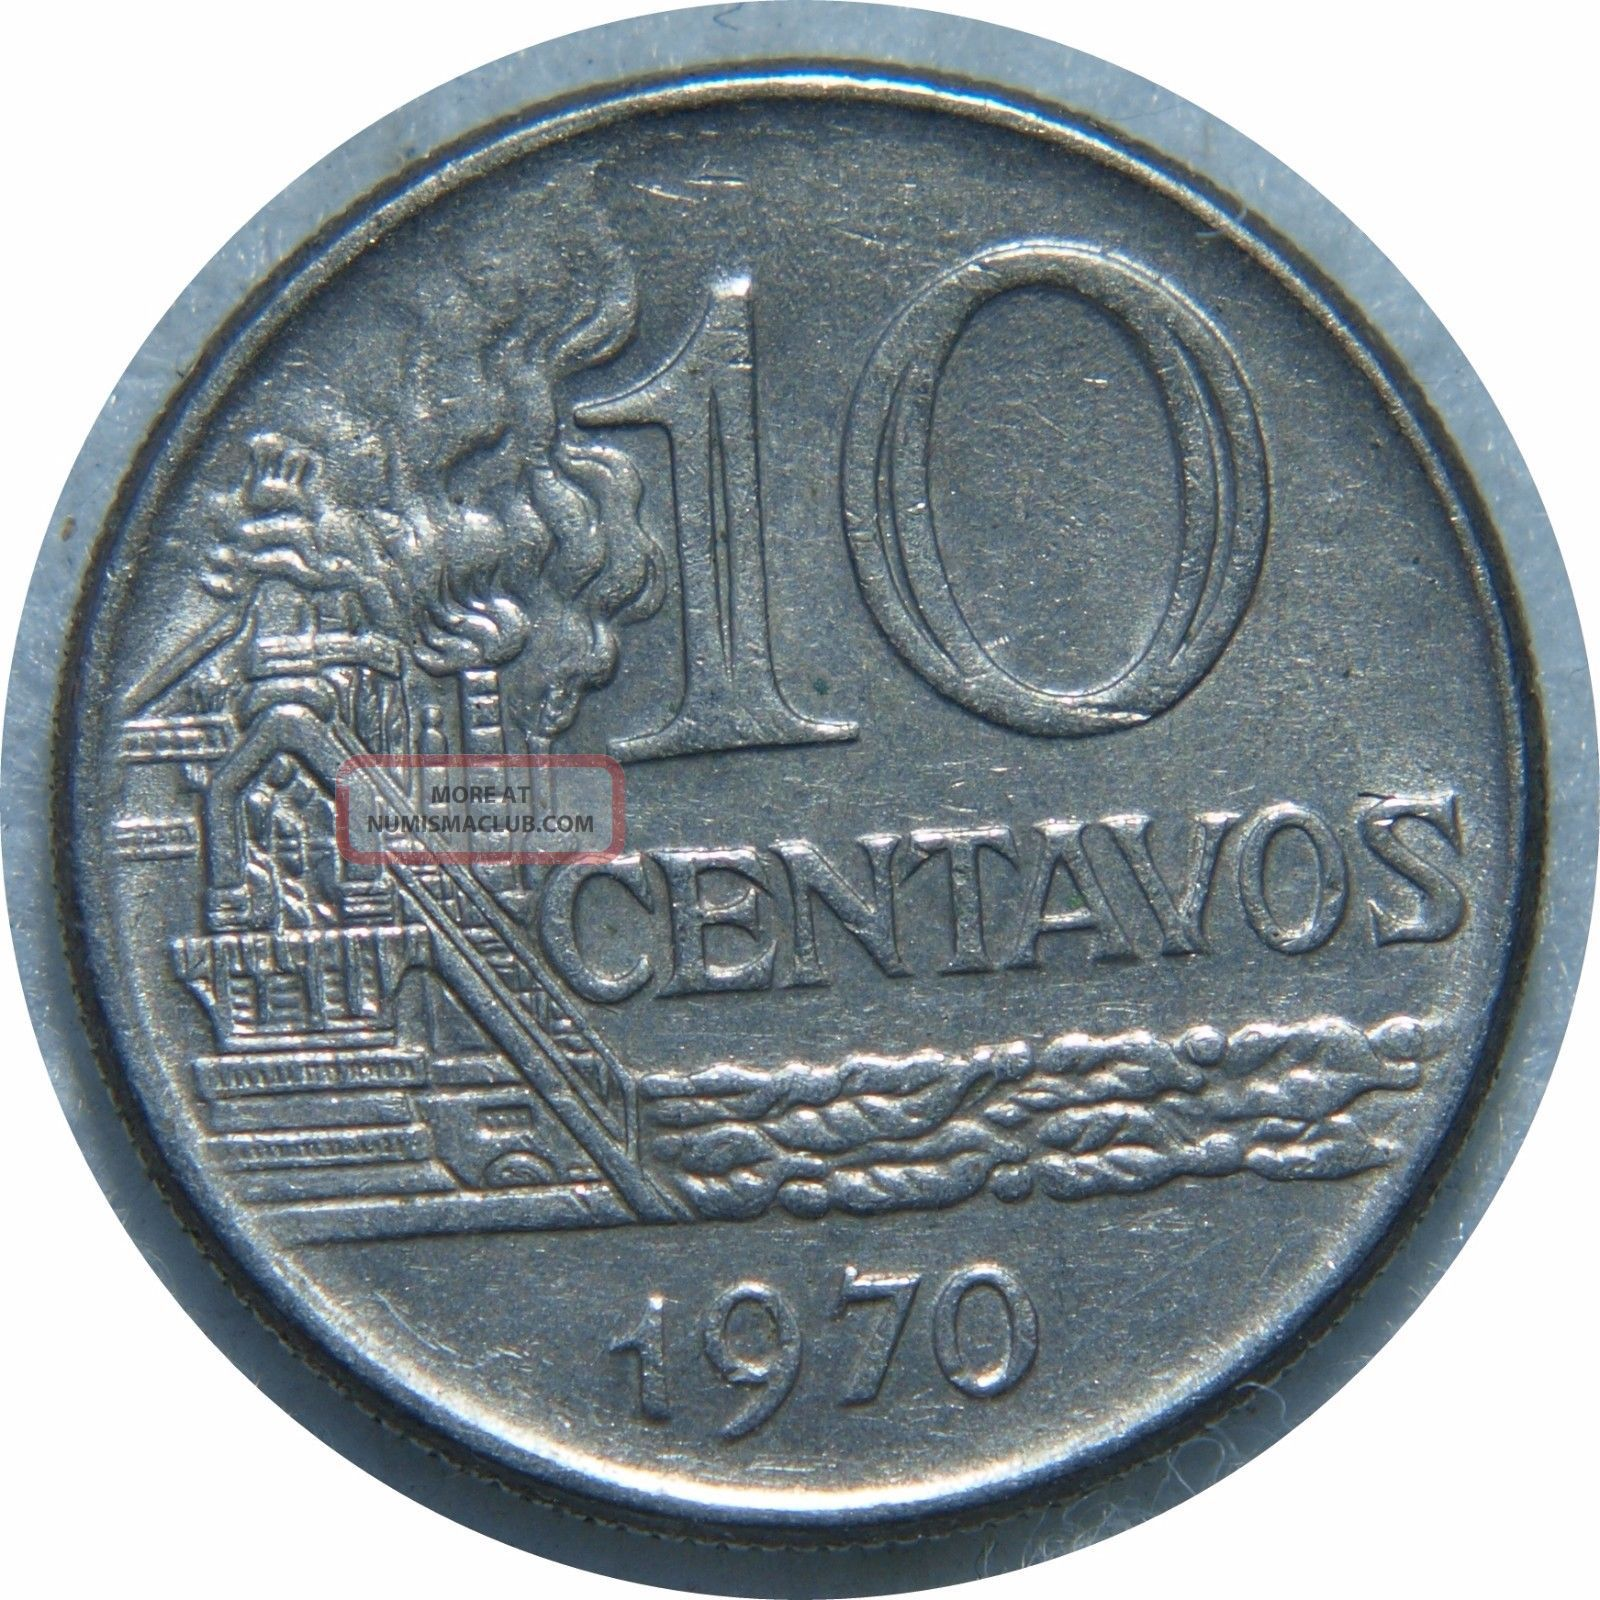 Brazil 10 Centavos 1970 Km 578.  1 Stainlees Steel N75 South America photo